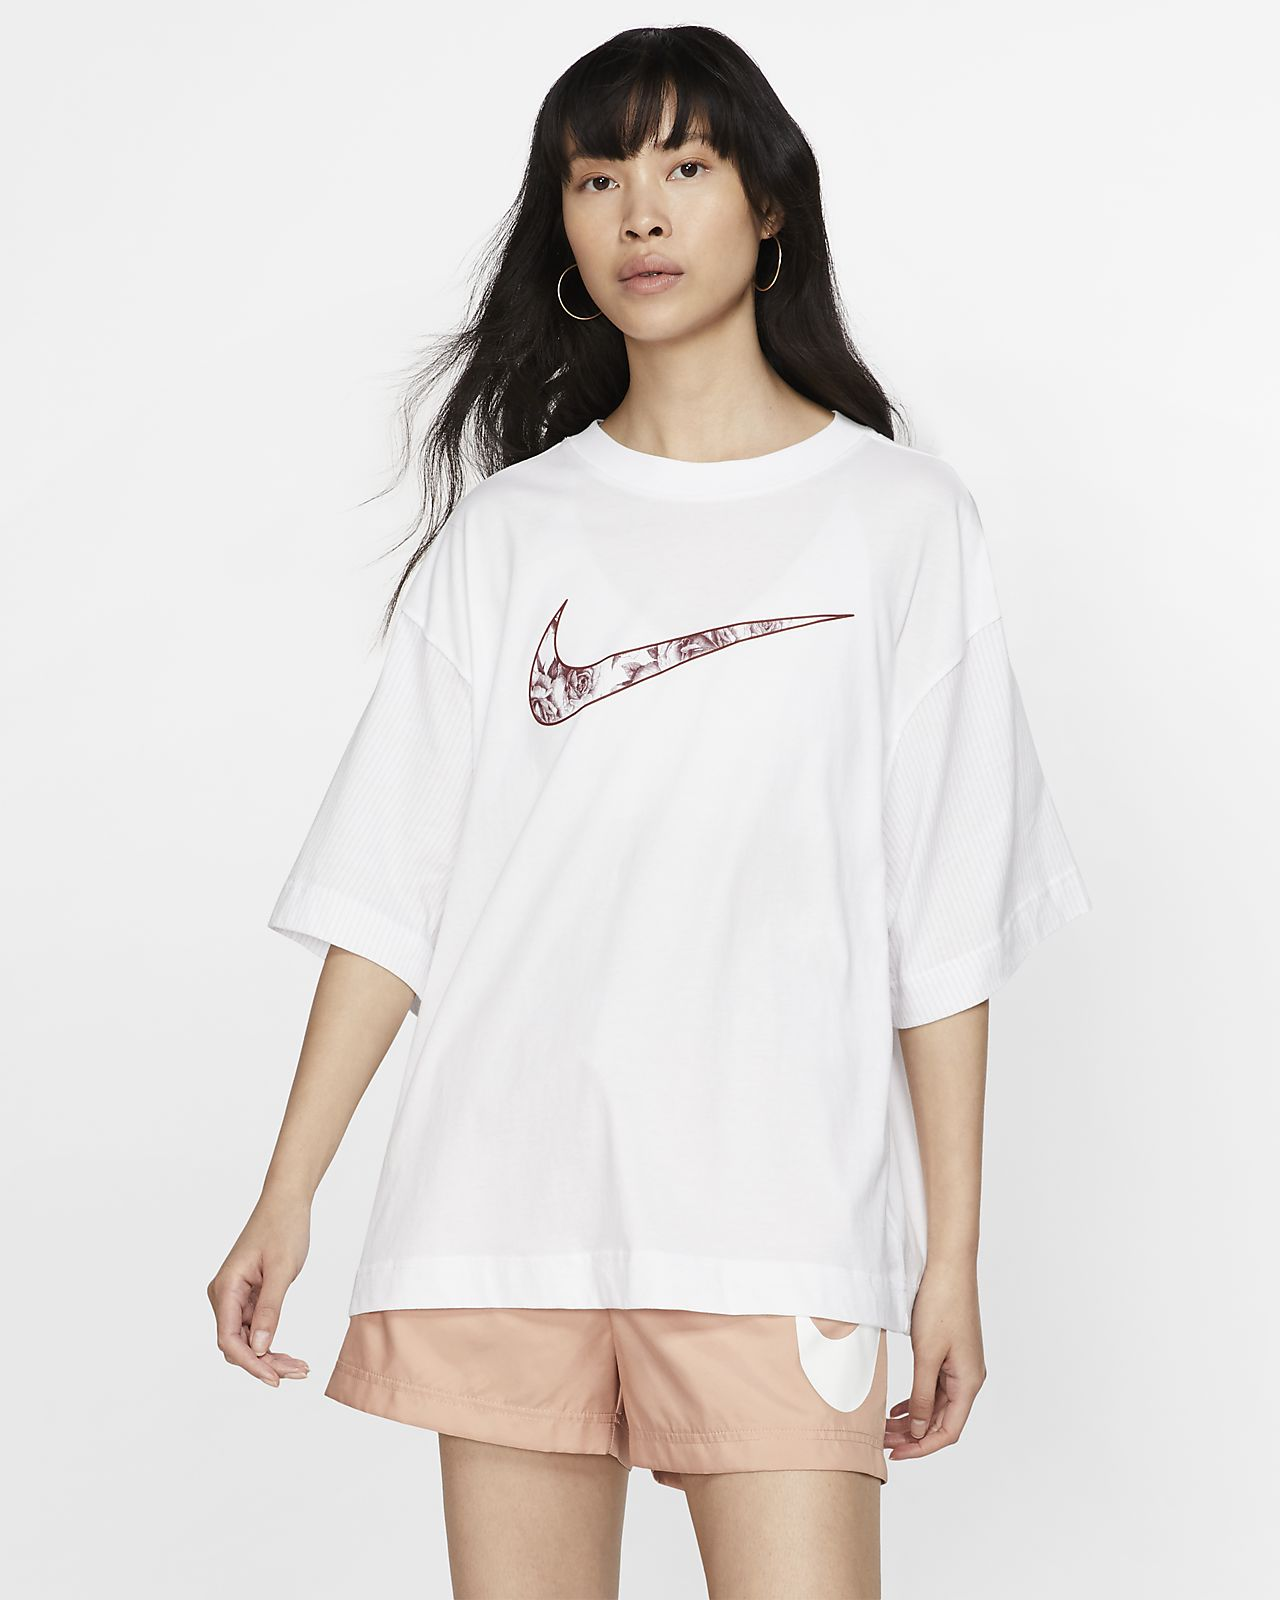 Nike Sportswear Unité Totale Women's Short-Sleeve Top